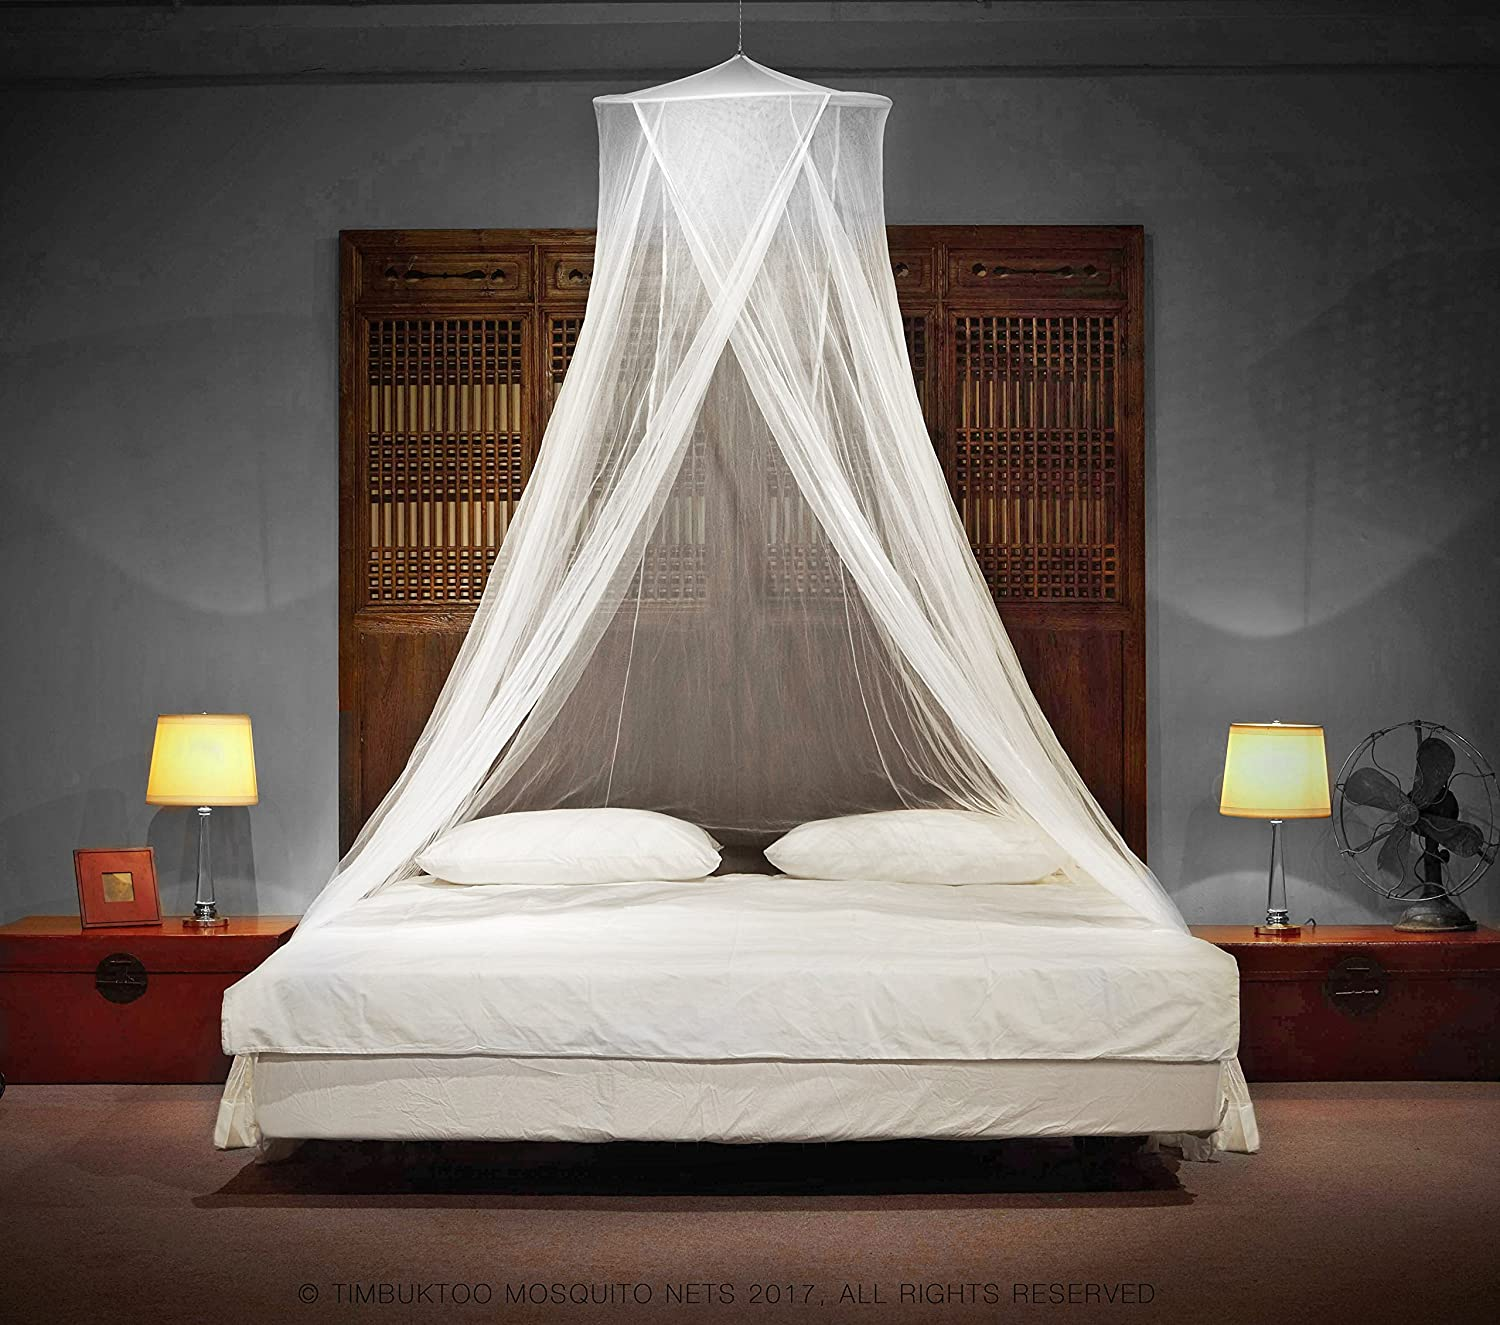 TIMBUKTOO MOSQUITO NETS Luxury Mosquito NET - for Single to King Size Beds Quick and Easy Installation System - Unique Internal Loop - 2 Entries - Ripstop Stuff Sack - No Added Chemicals. SYNCHKG091501